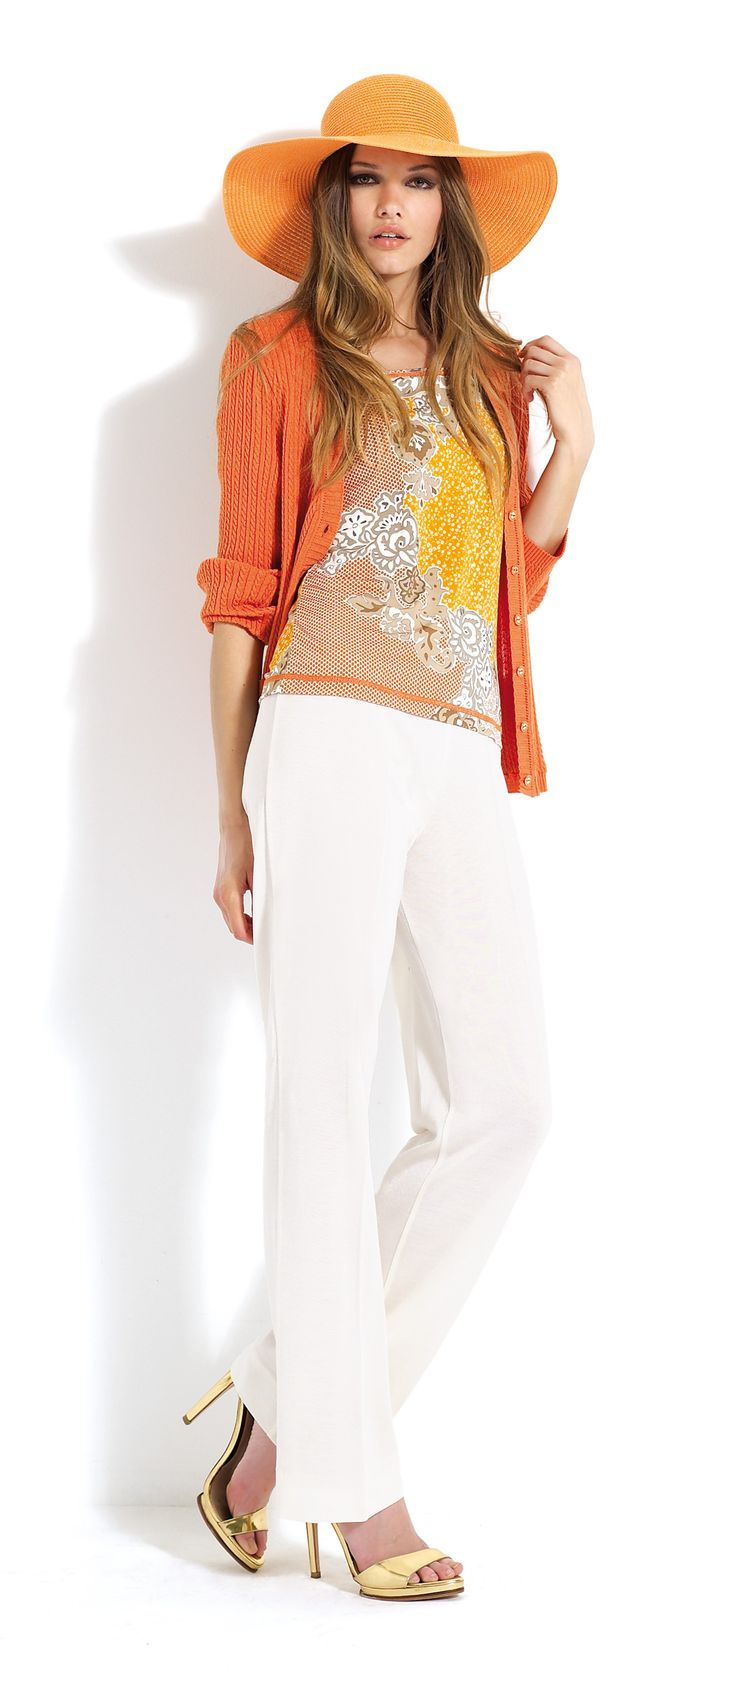 Pantalón blanco con blusa estampada y rebeca naranja a juego.   #trousers #white #orange #cardigan